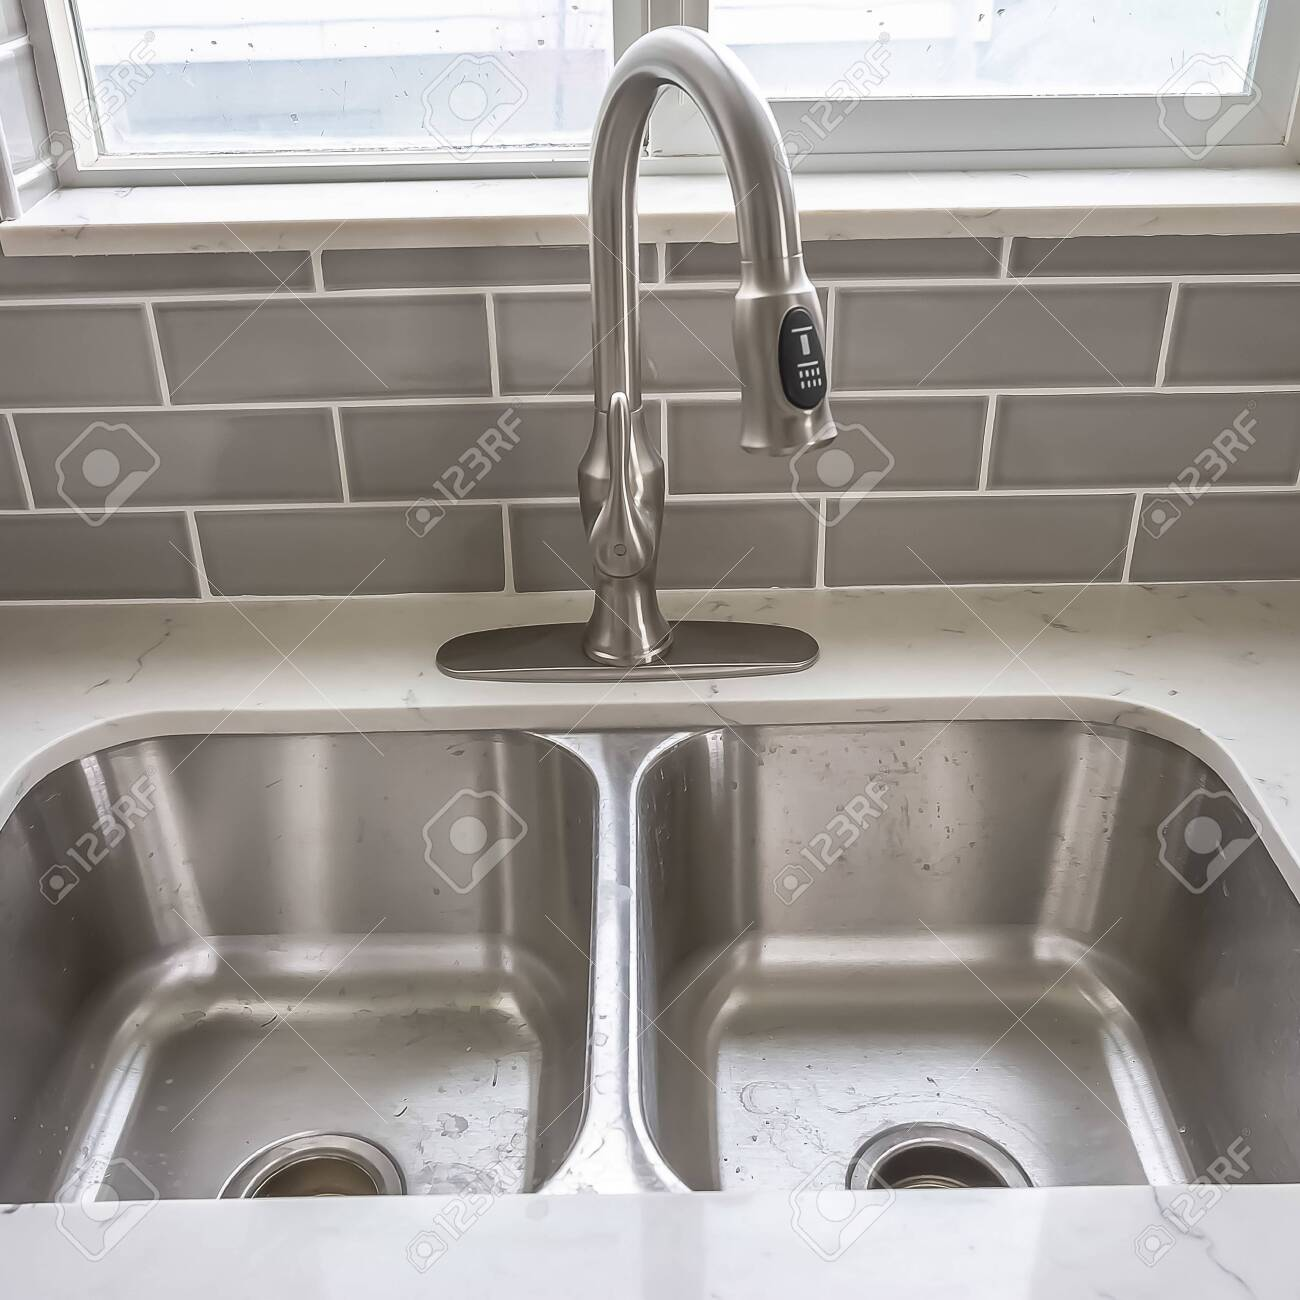 Square frame Double bowl stainless steel sink undermounted on..